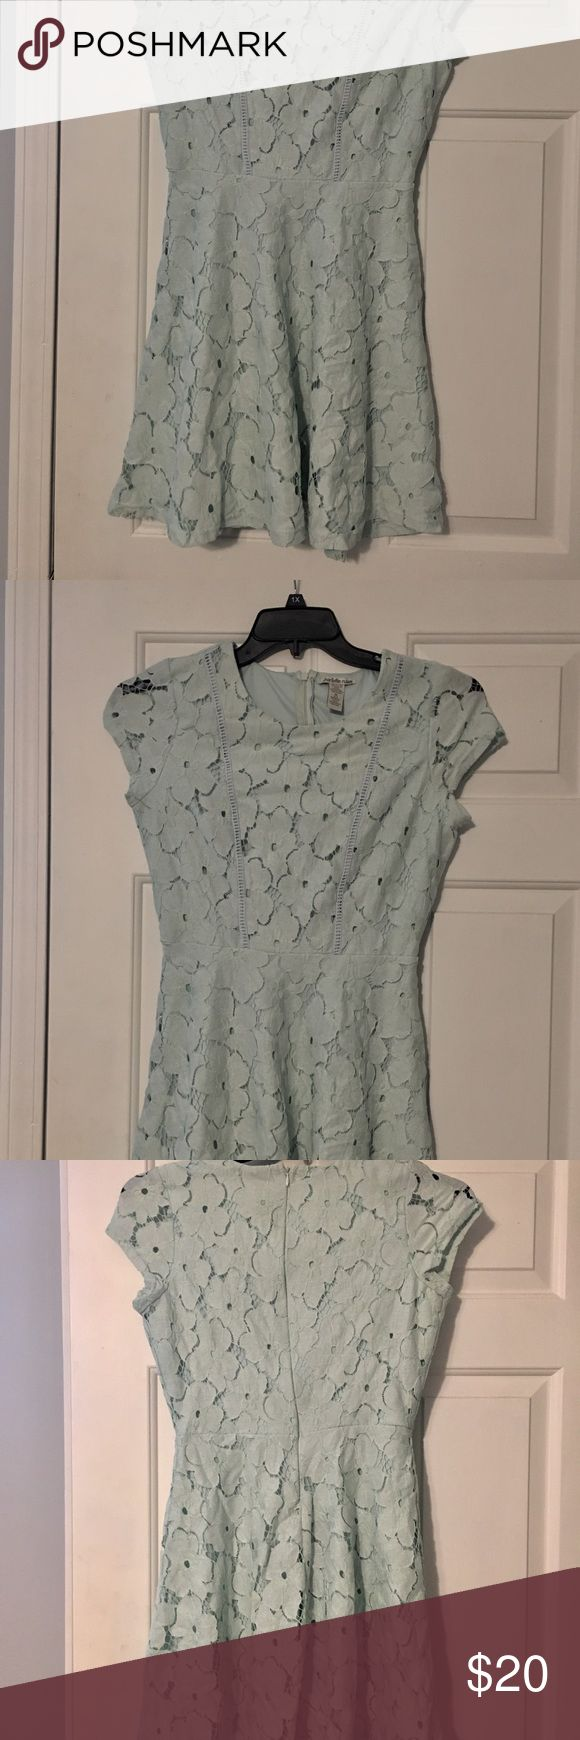 Pastel mint Charolette Rouse Dress Cotton overlay floral l, fully lined. Size Junior Medium. Worn twice. Once for Easter , next for a wedding. Excellent condition. Charlotte Russe Dresses Midi